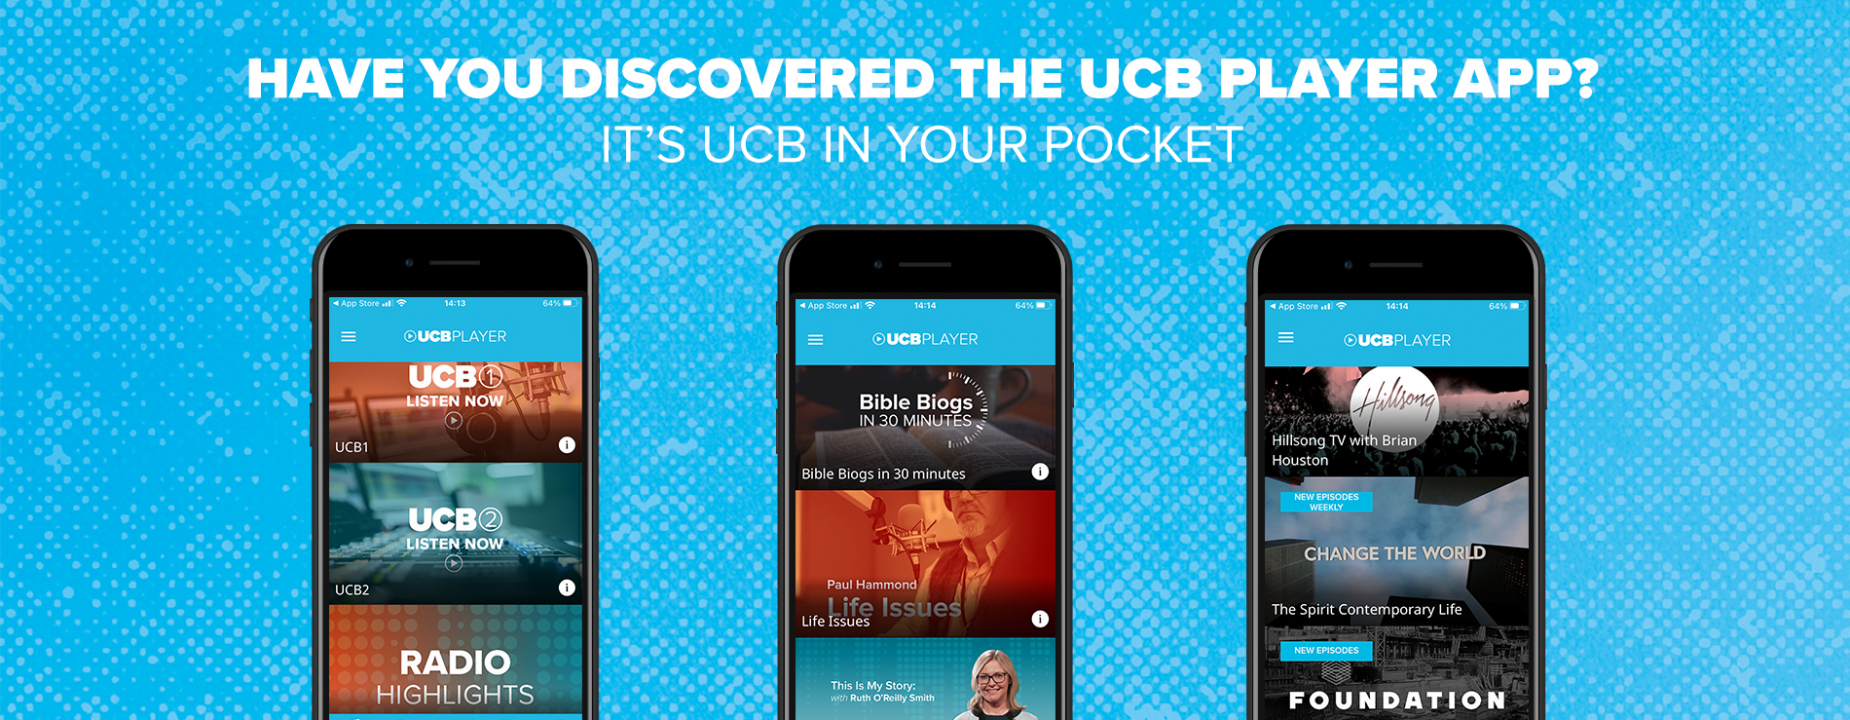 Have you discovered the UCB Player app? It's UCB in your pocket